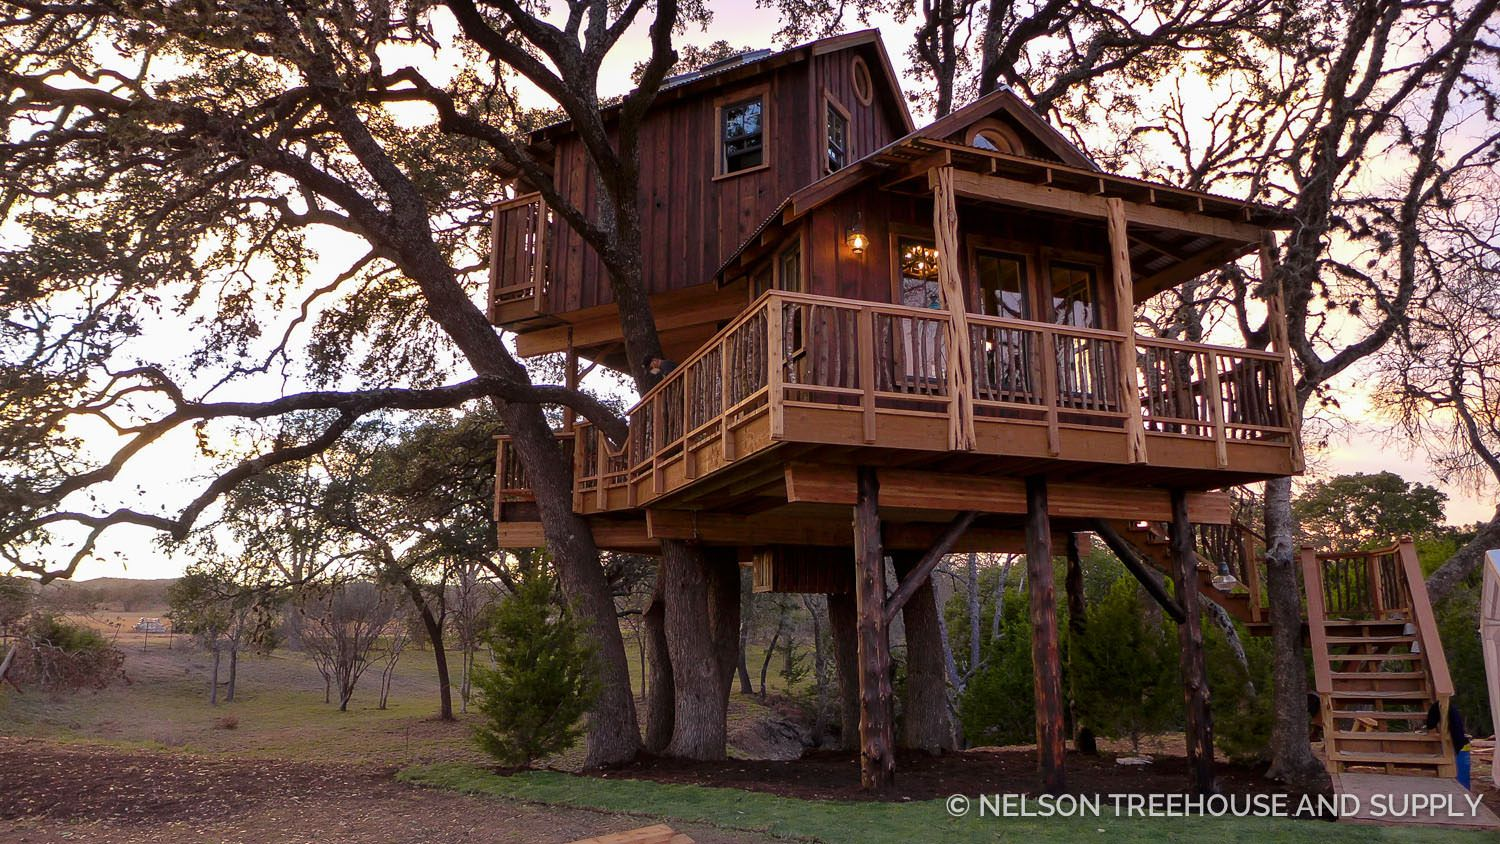 treehouse masters treehouses. Hill Country Hideout- Pete Nelson - Treehouse Masters Season 9 Treehouses